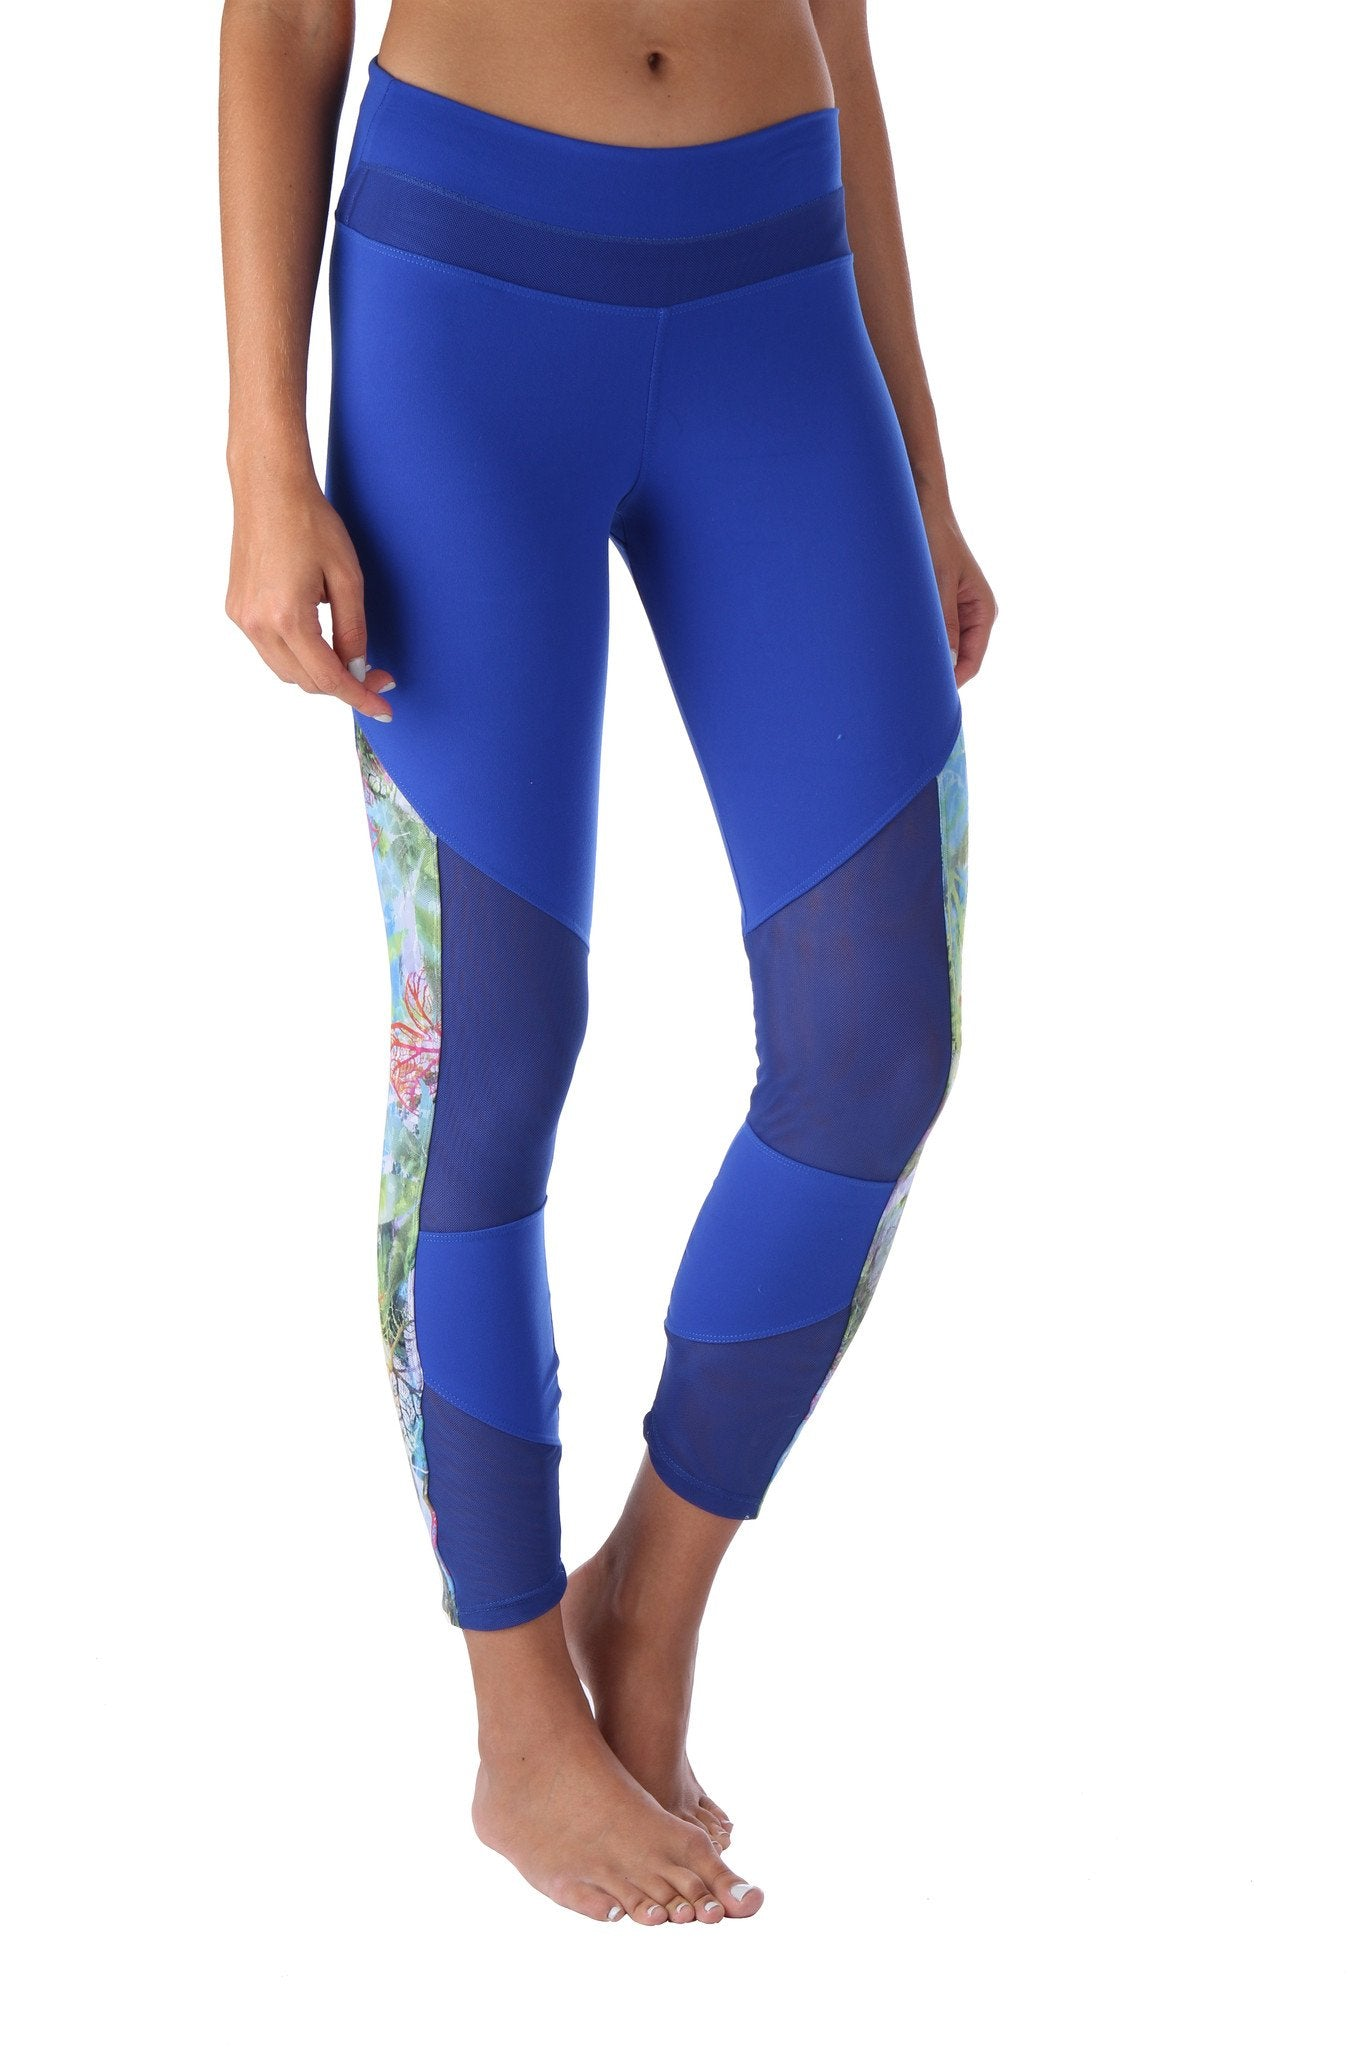 Blue Printed Mesh Legging